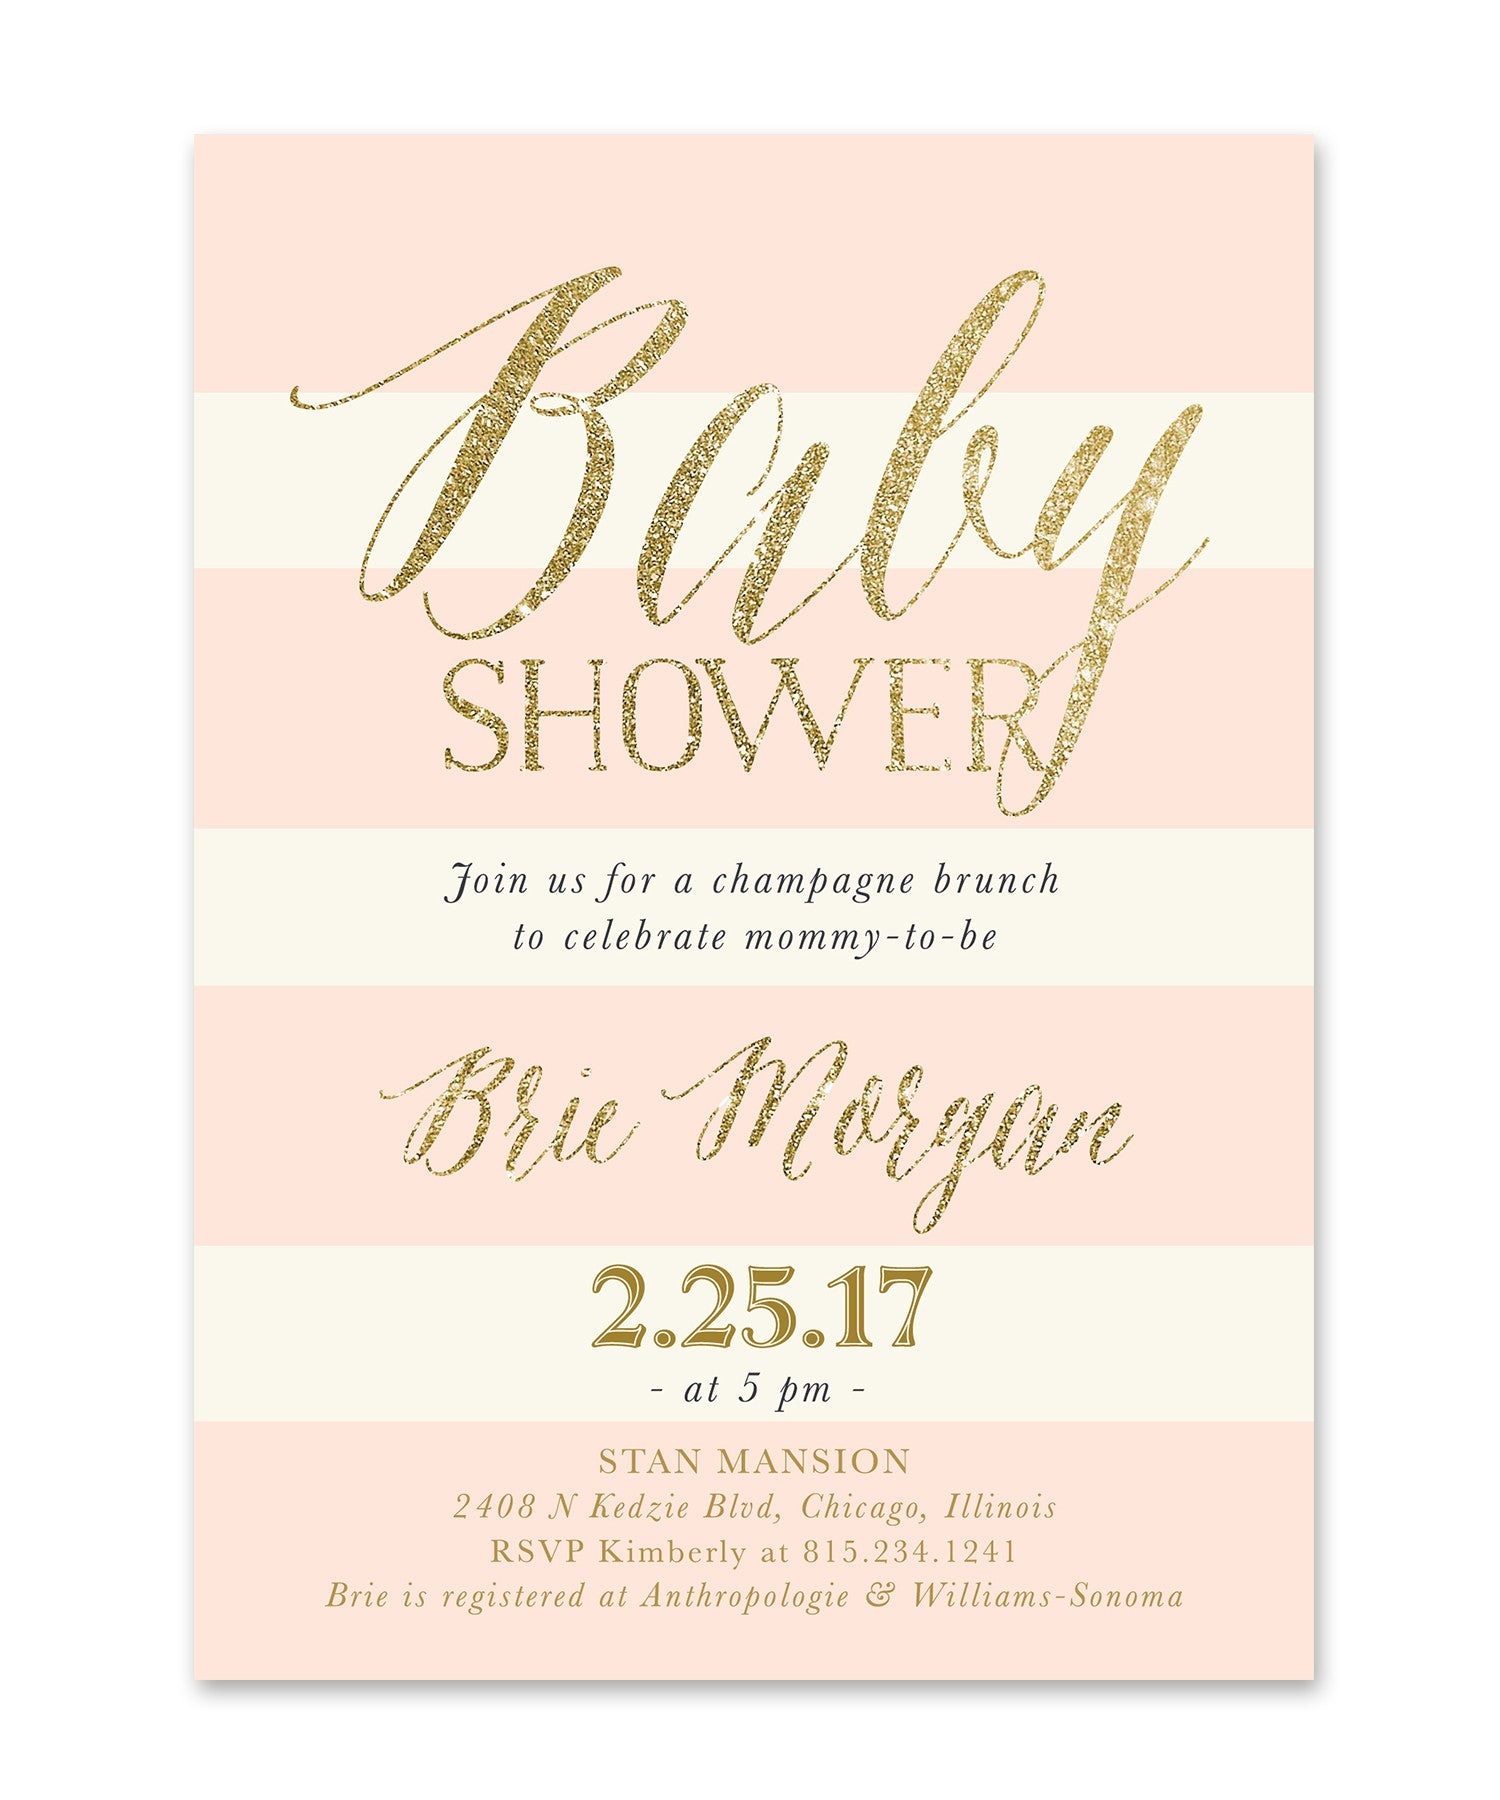 ready baby invitations shower in printed blush to invitation pink and rectangle pop glitter gold readytopopinvitation